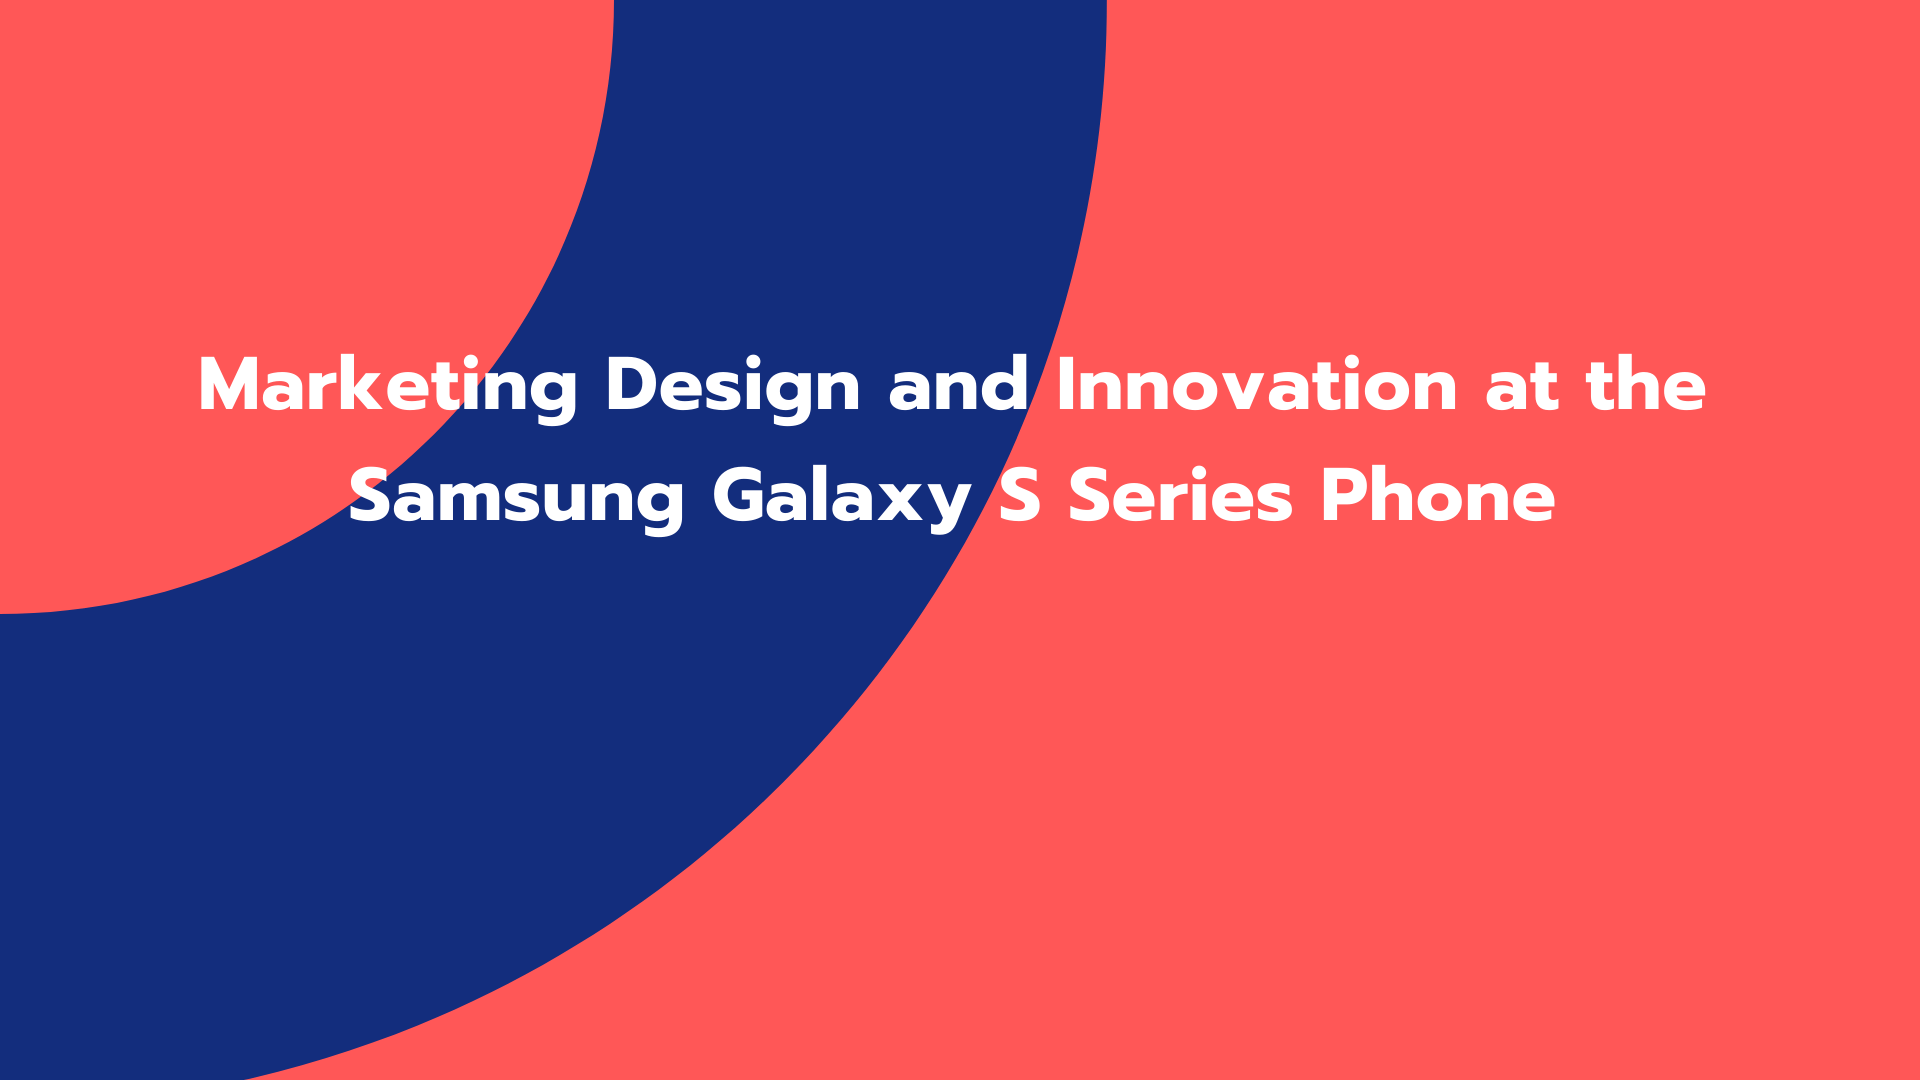 Marketing Design and Innovation at the Samsung Galaxy S Series Phone